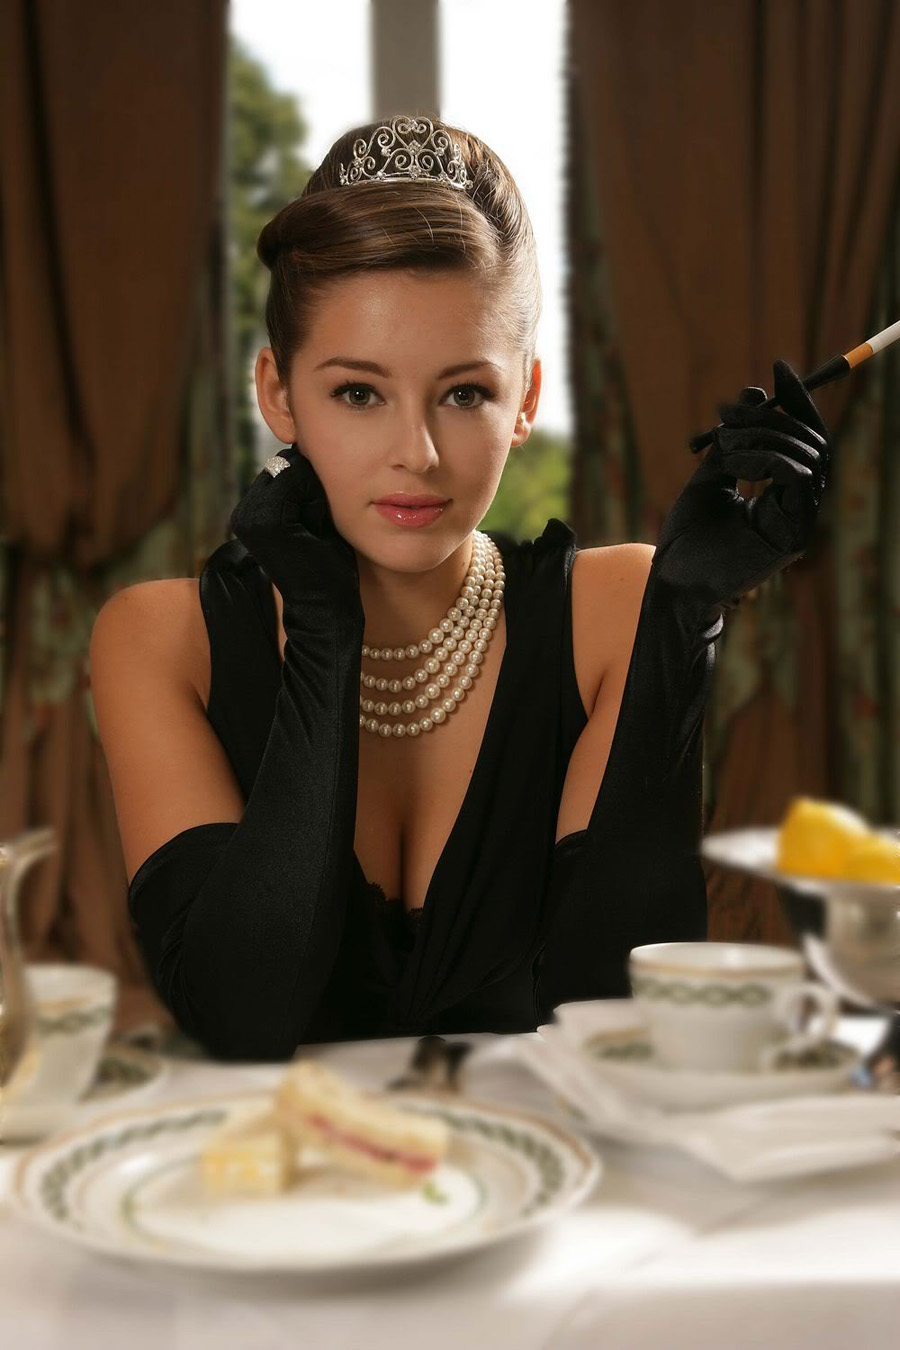 It is strange to see another British lingerie and nude model channeling her inner  Audrey Hepburn  and looking so great and natural. The look has a slightly cheaper feel because of the cut of the dress and its fabric, but  Keeley Hazell's  face is seductive and innocent at the same time, which saves it.